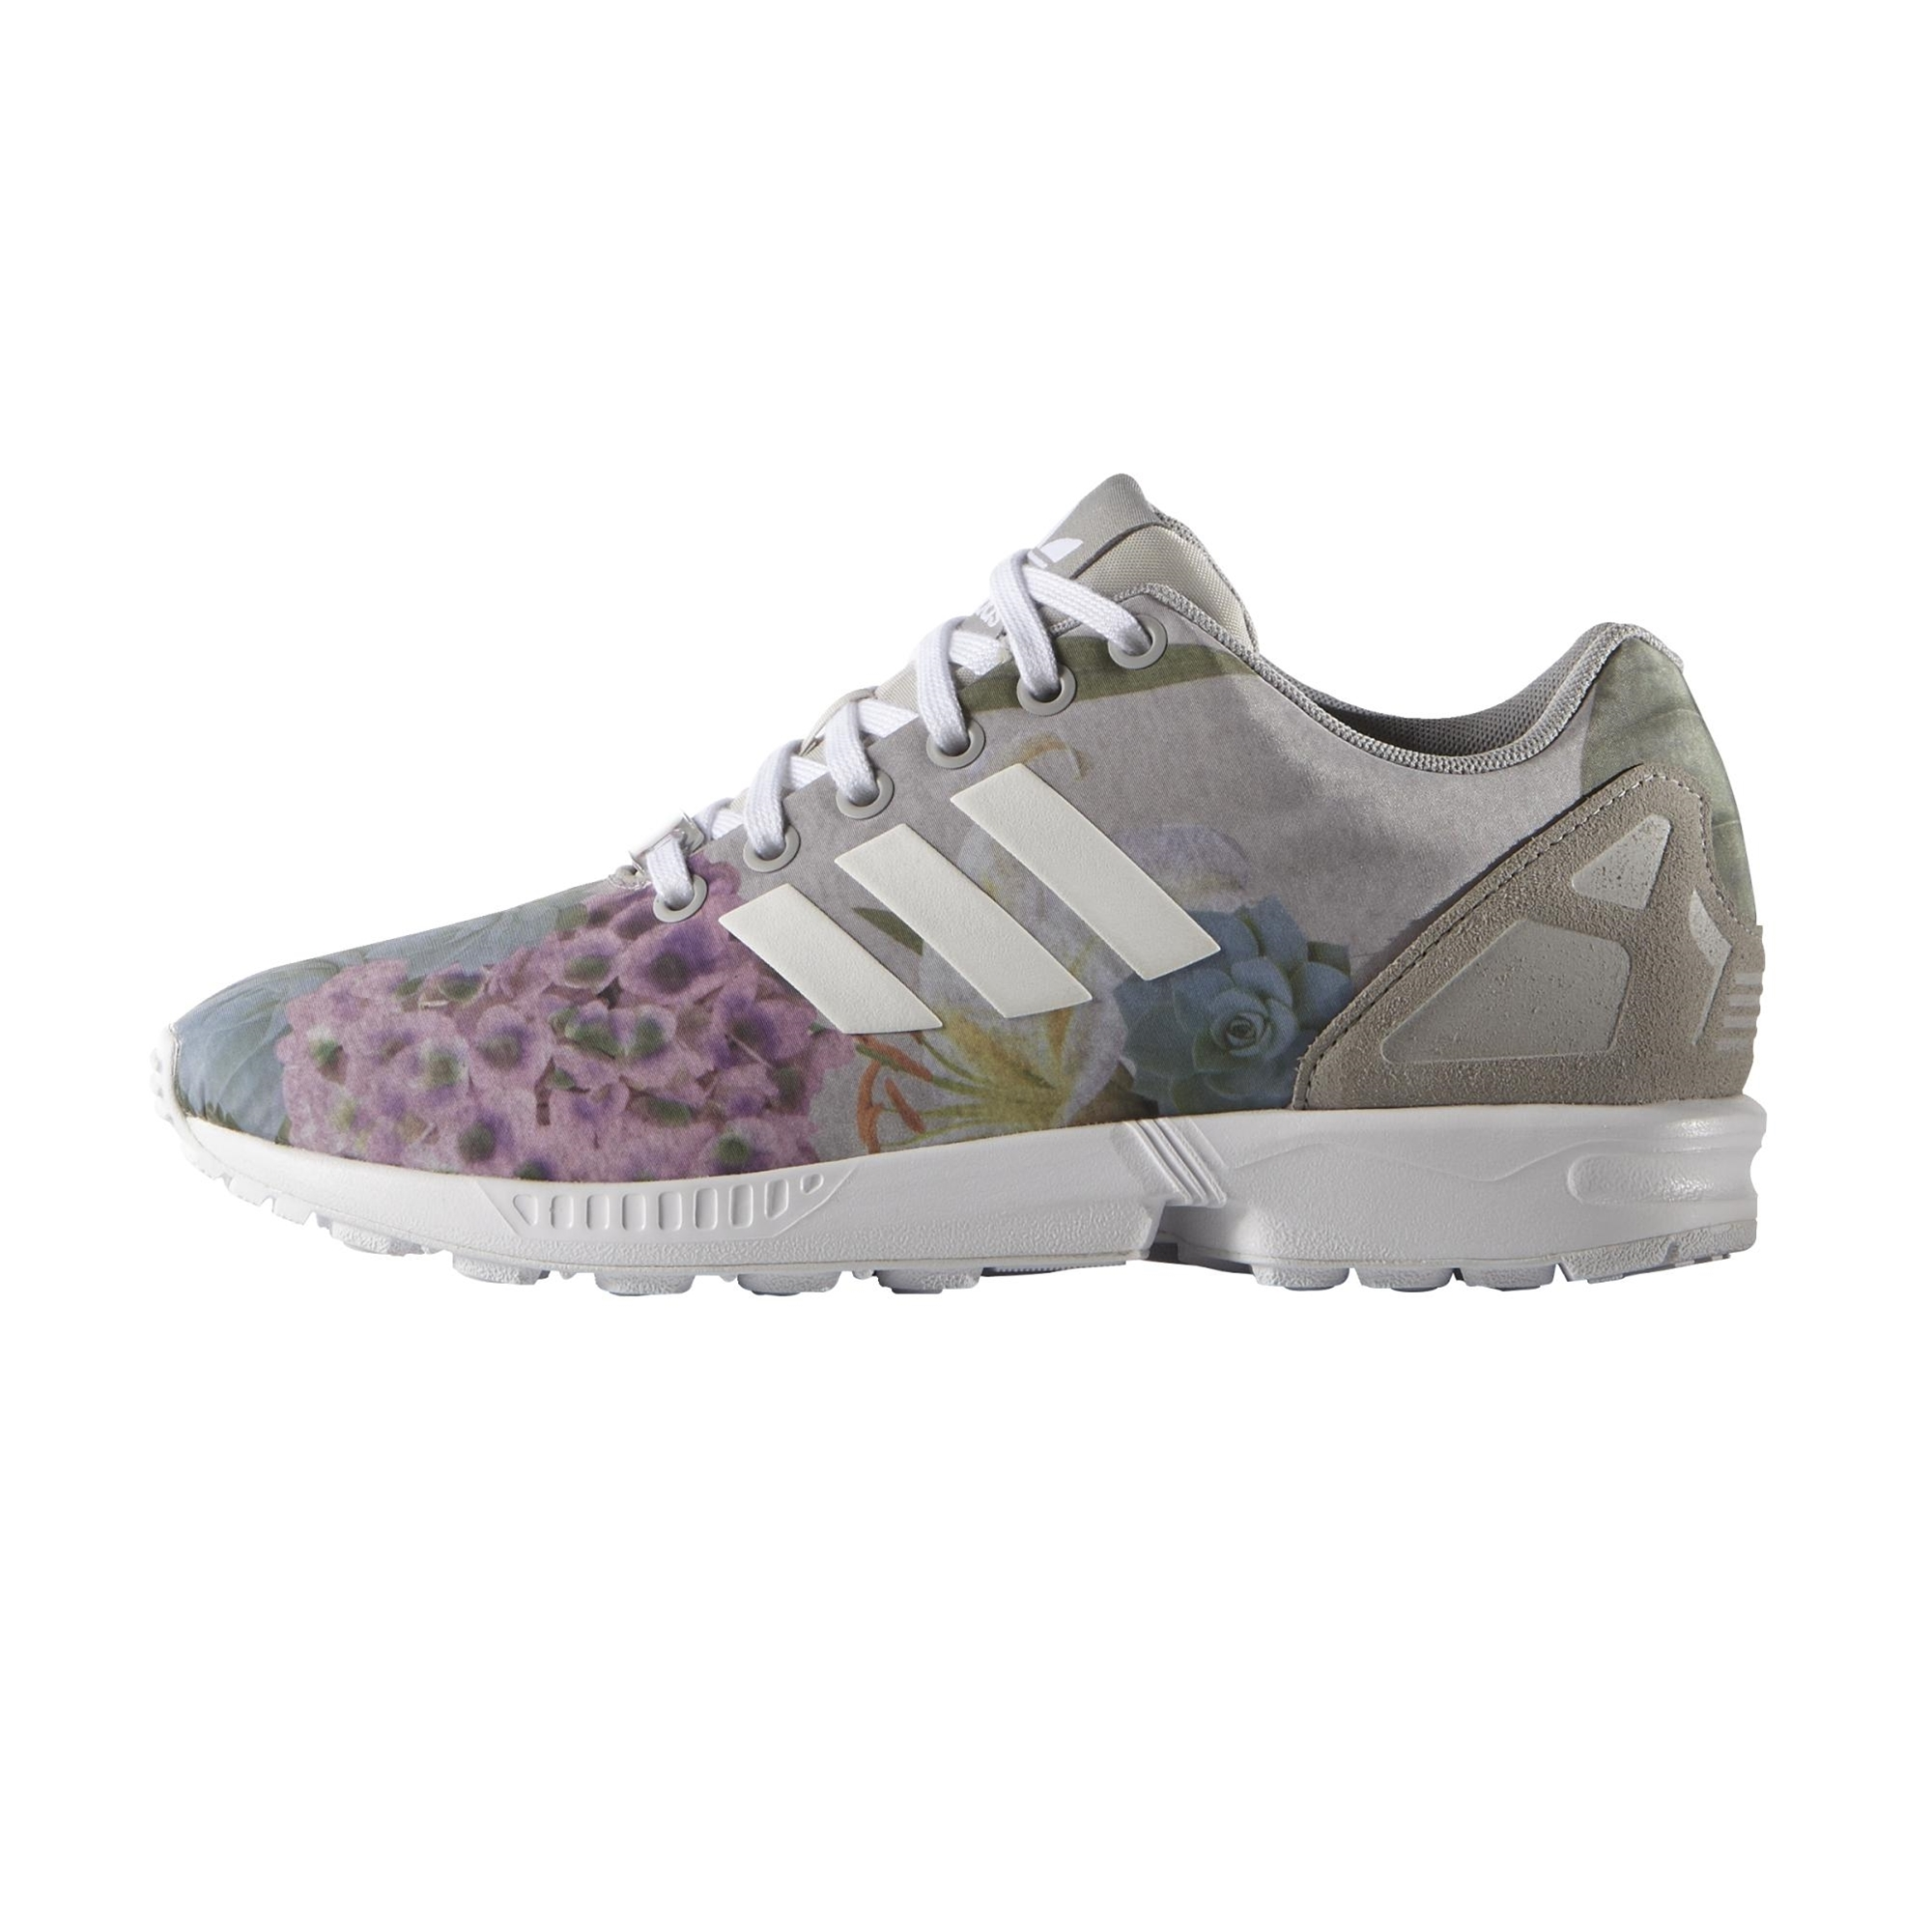 superior quality c98a1 e0c25 ... Adidas Originals Mujer ZX Flux